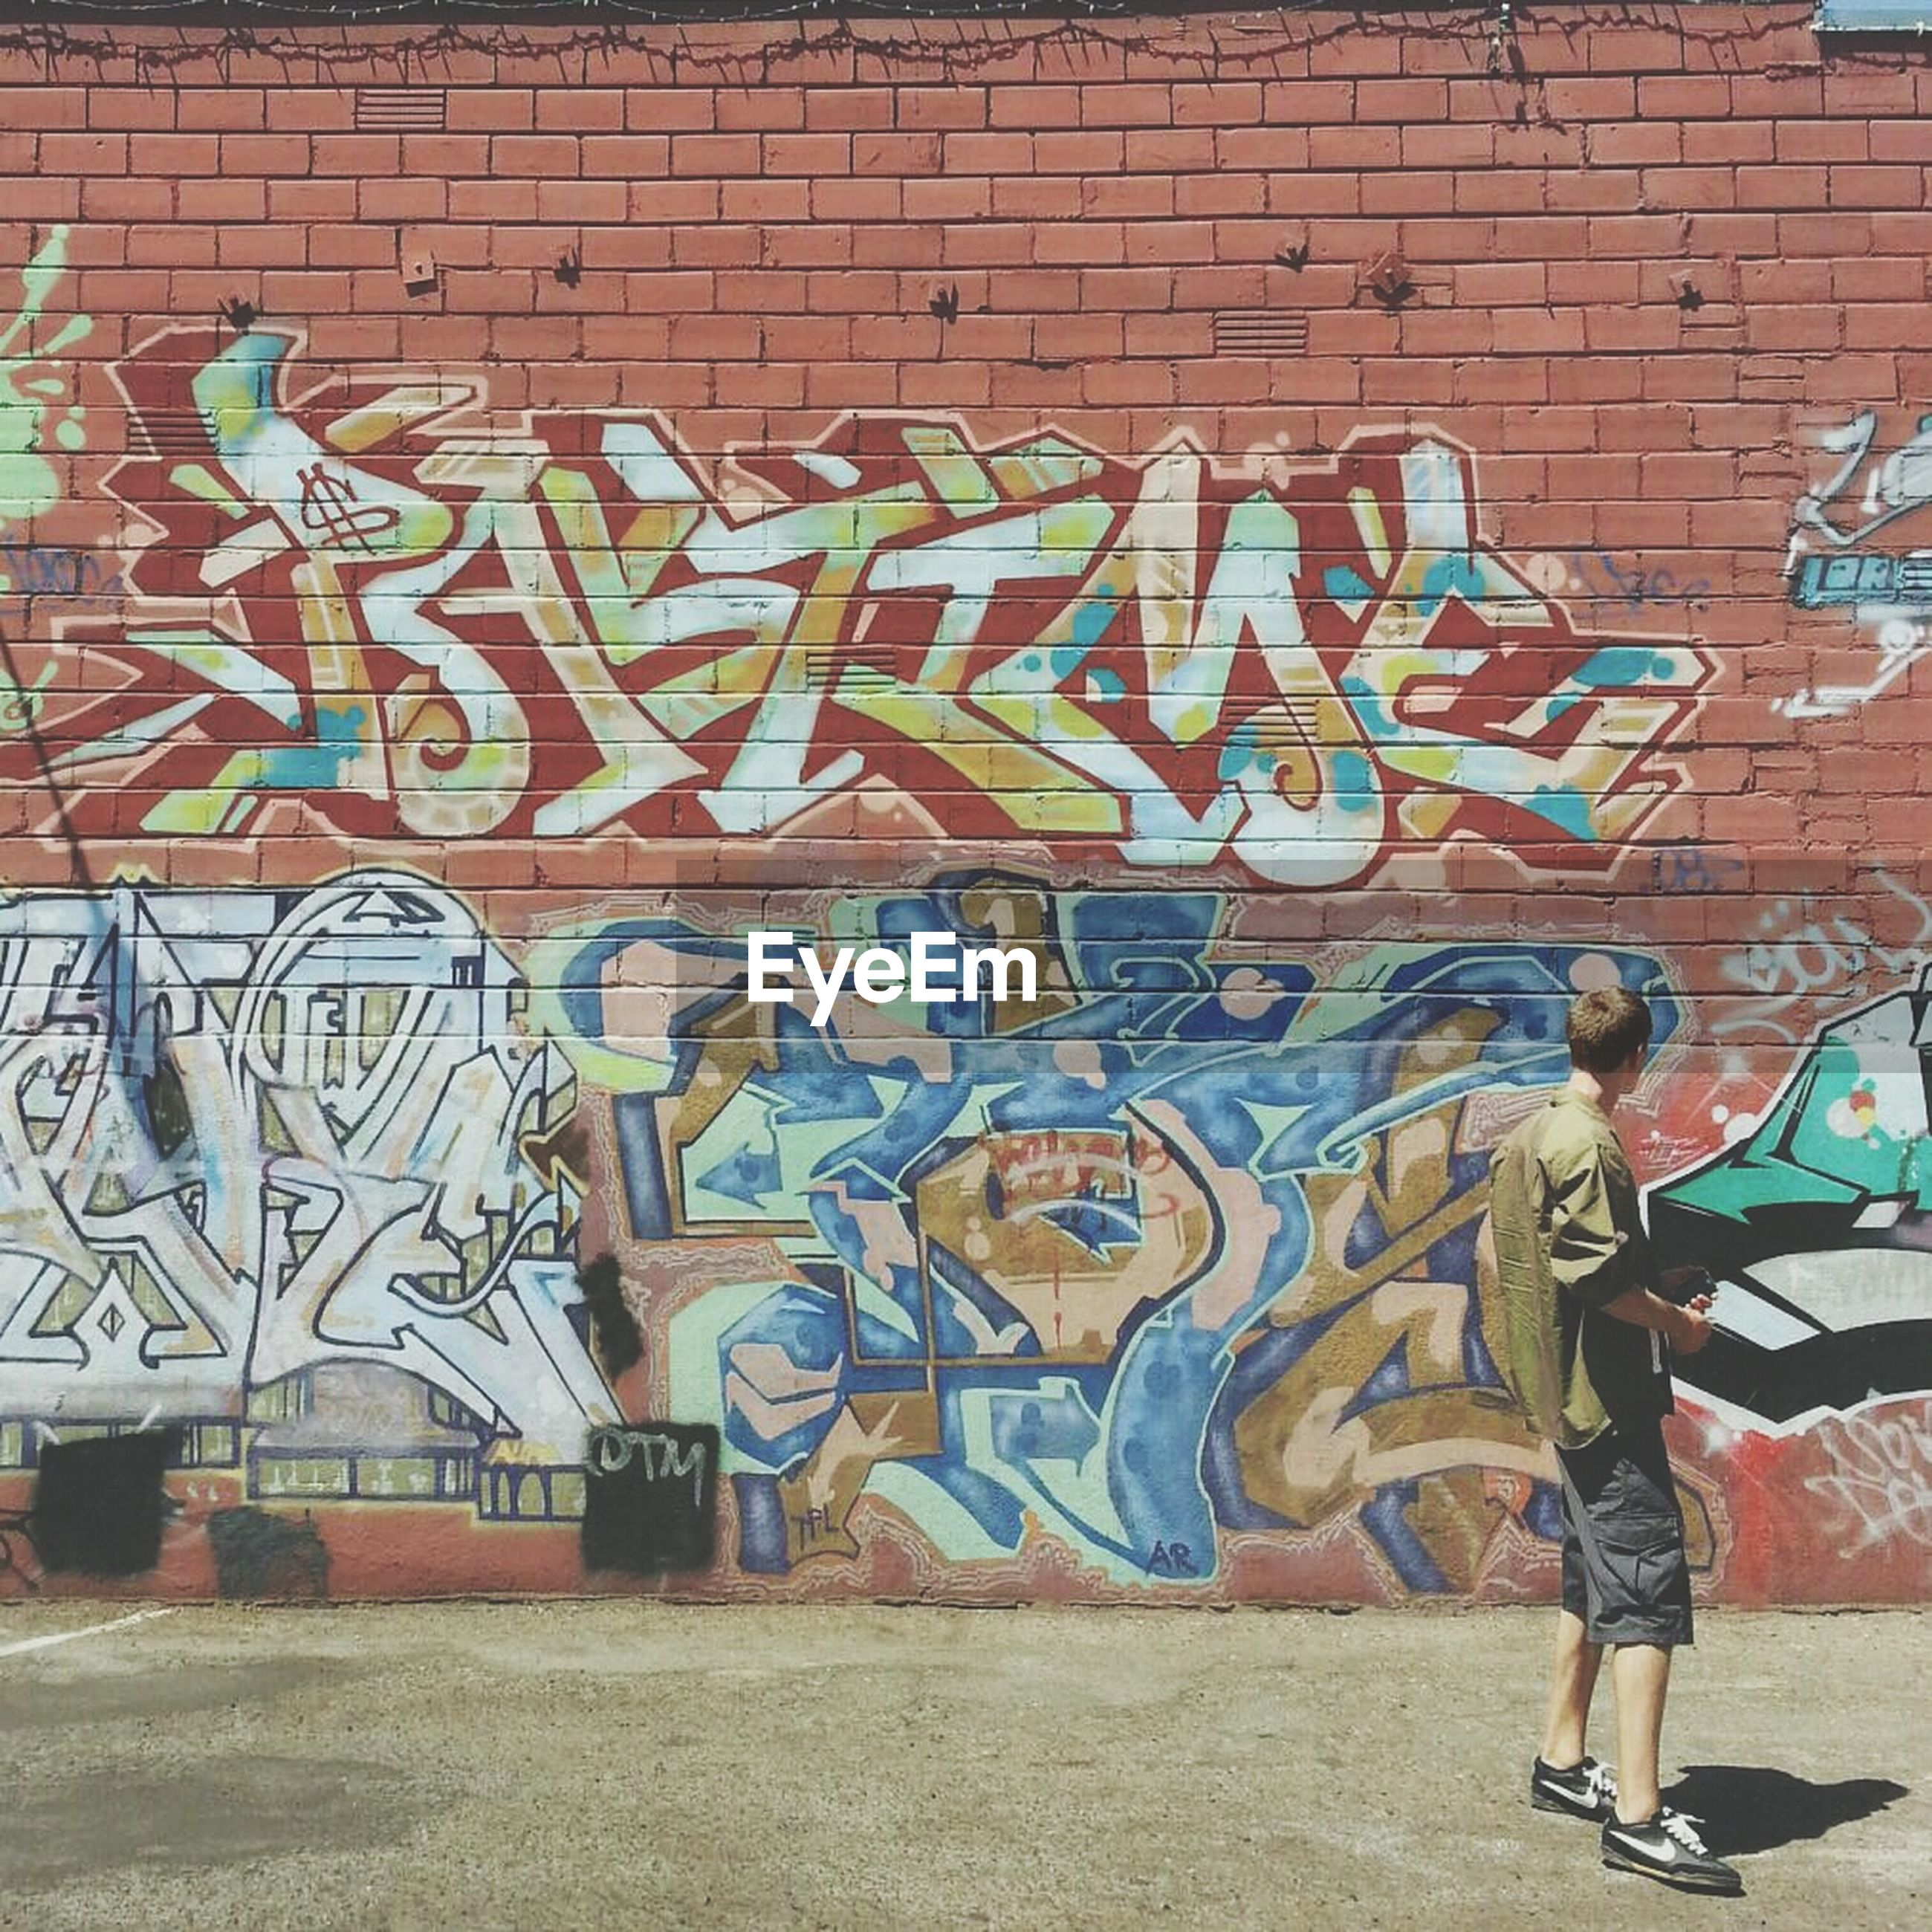 graffiti, art, art and craft, wall - building feature, creativity, built structure, architecture, building exterior, lifestyles, full length, street art, wall, leisure activity, text, casual clothing, brick wall, men, standing